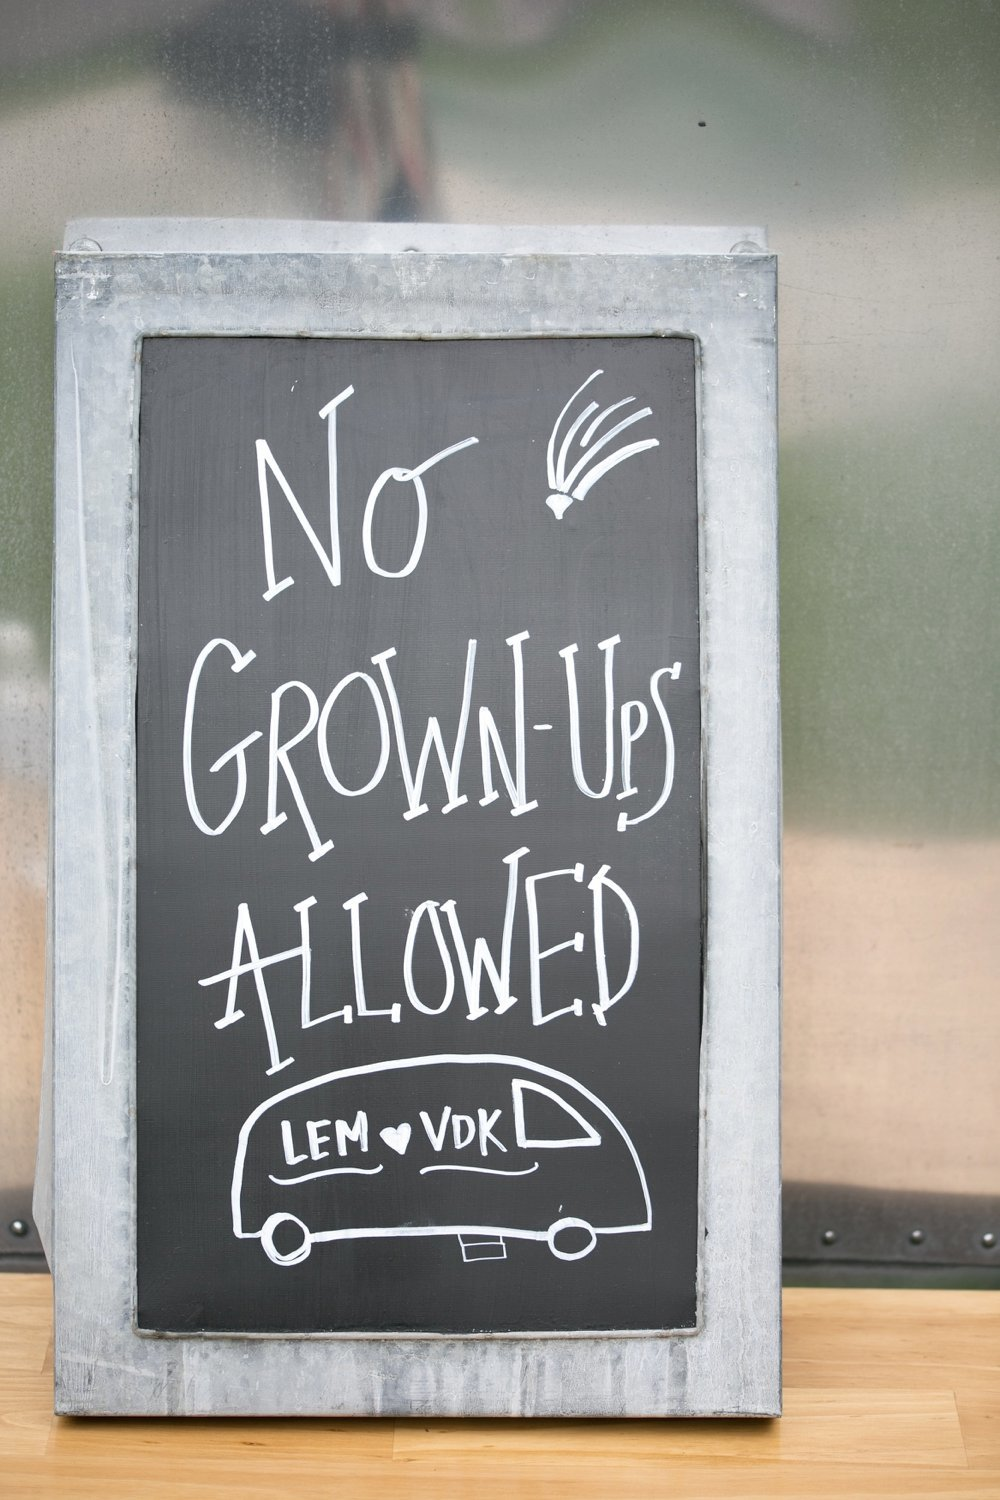 No grownups allowed chalkboard sign at wedding. Great for a kids play area!